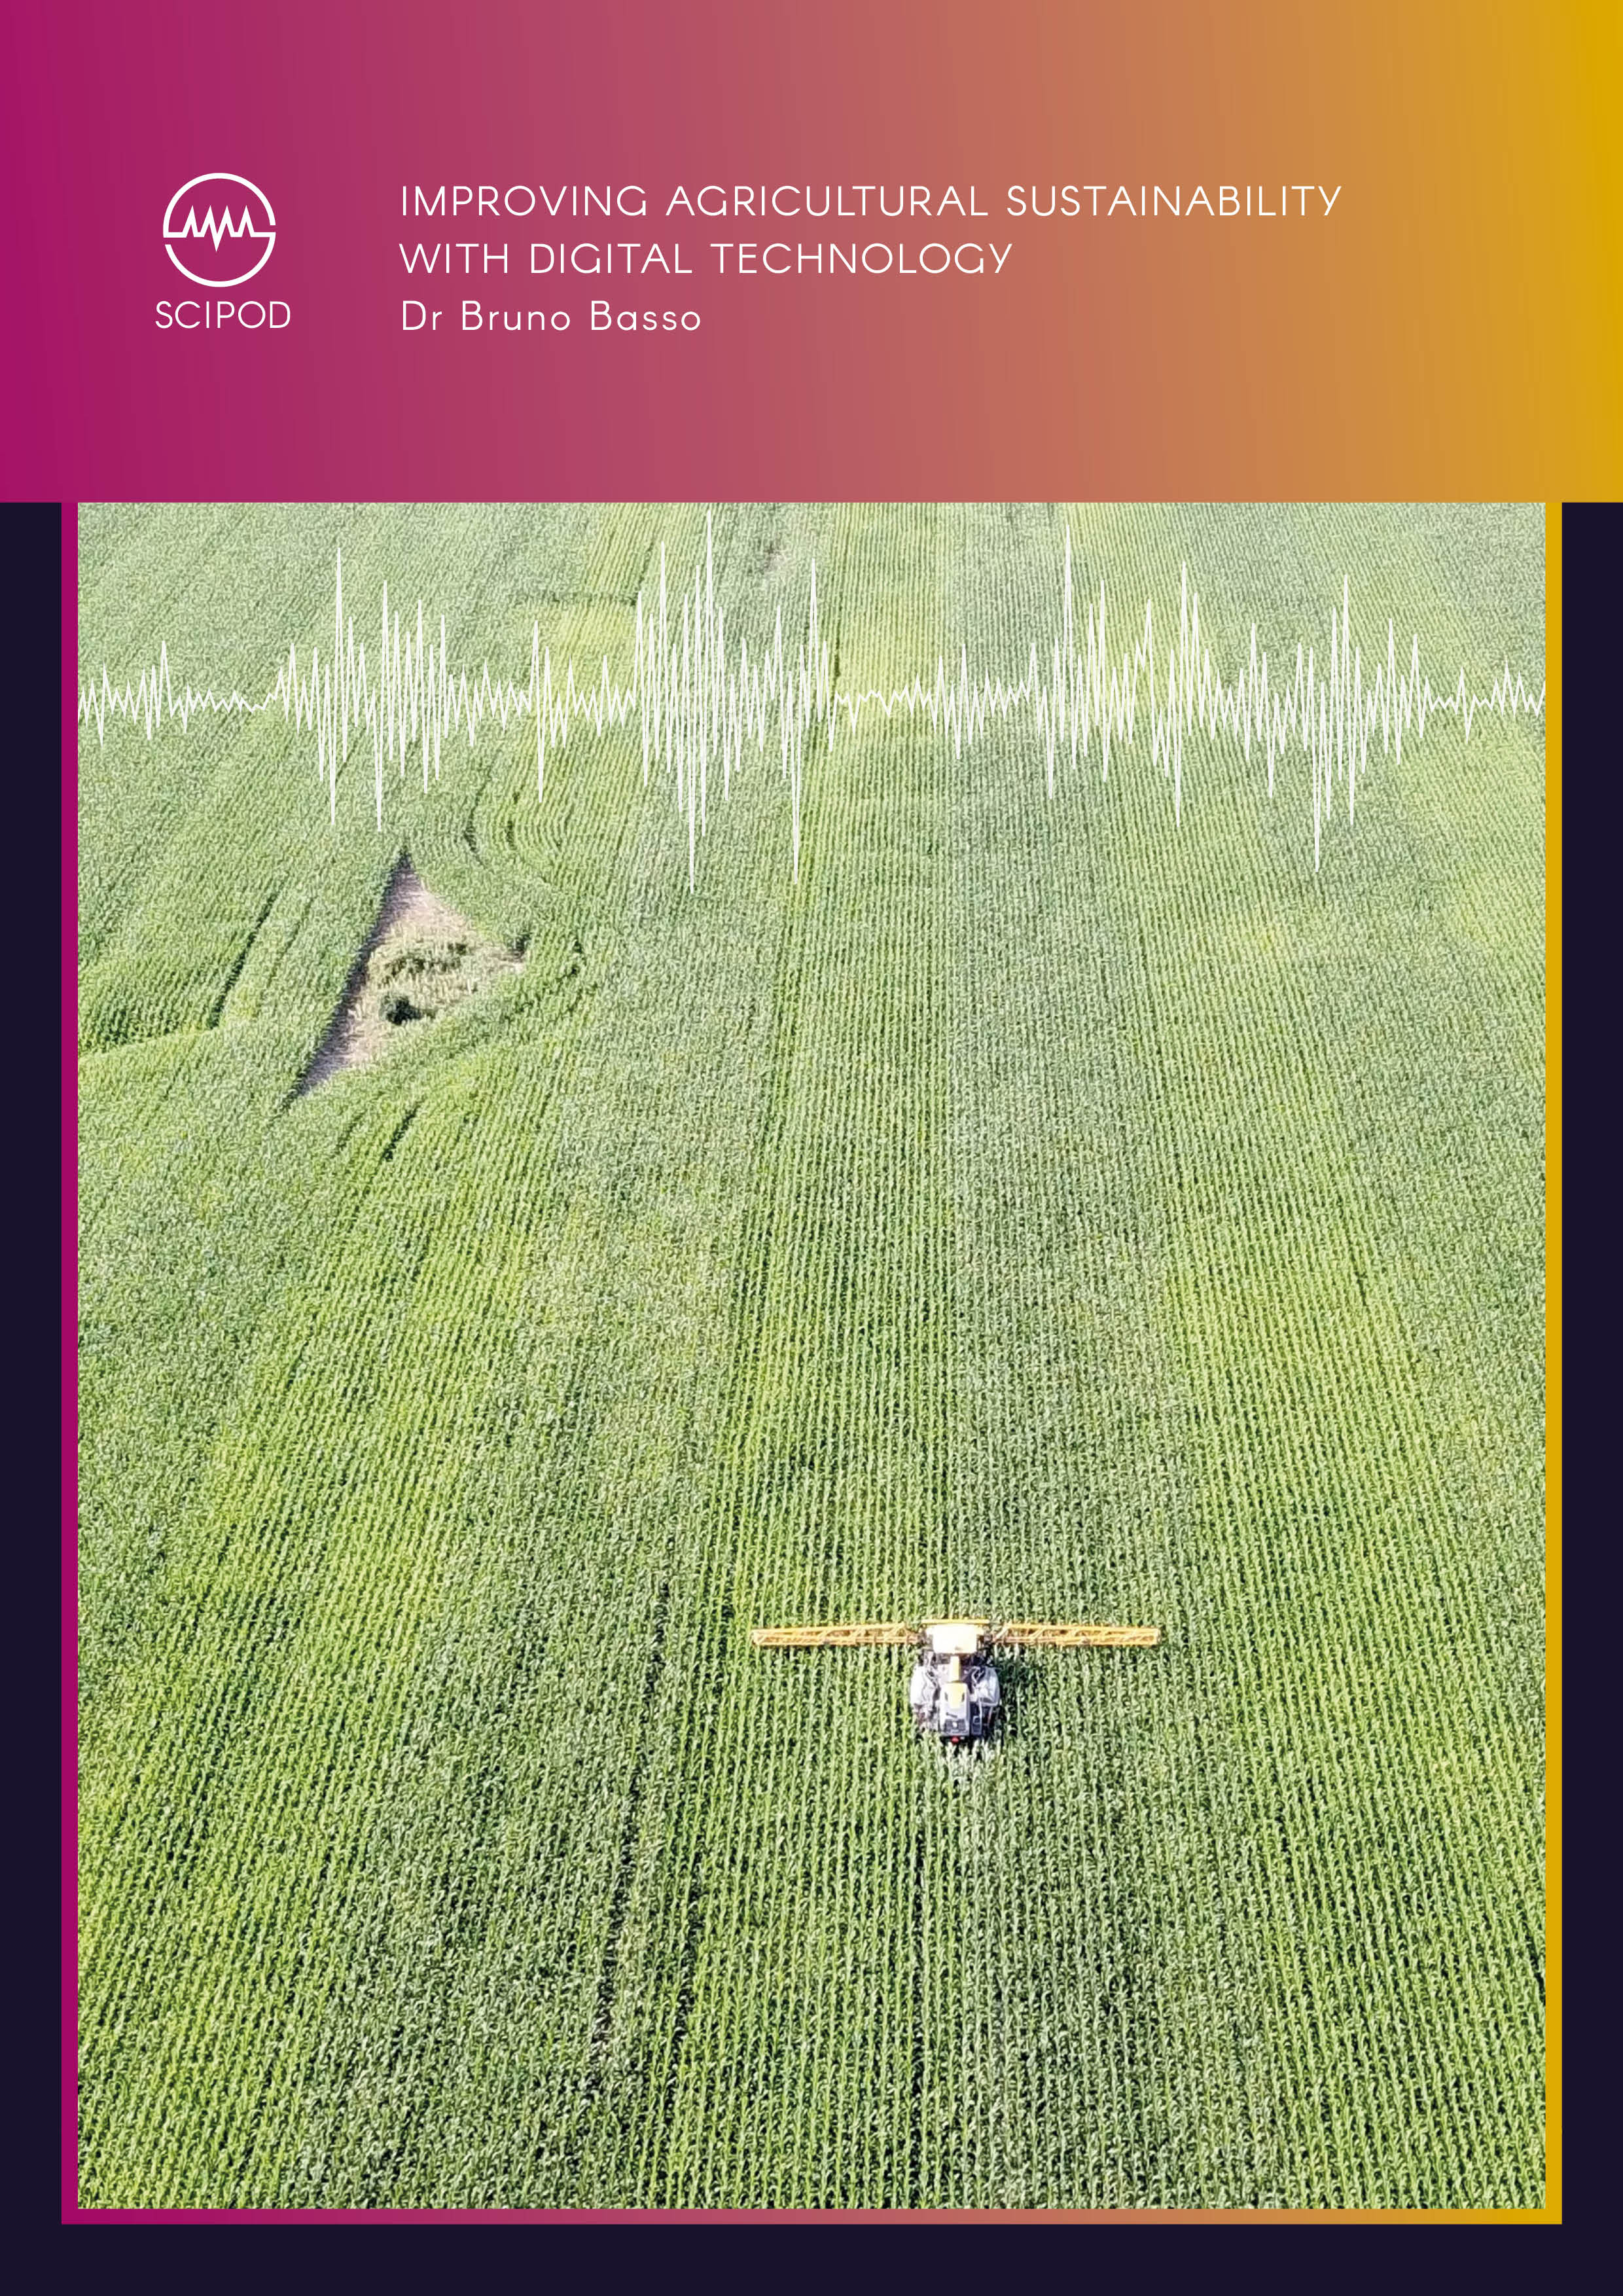 Dr Bruno Basso – Improving Agricultural Sustainability with Digital Technology